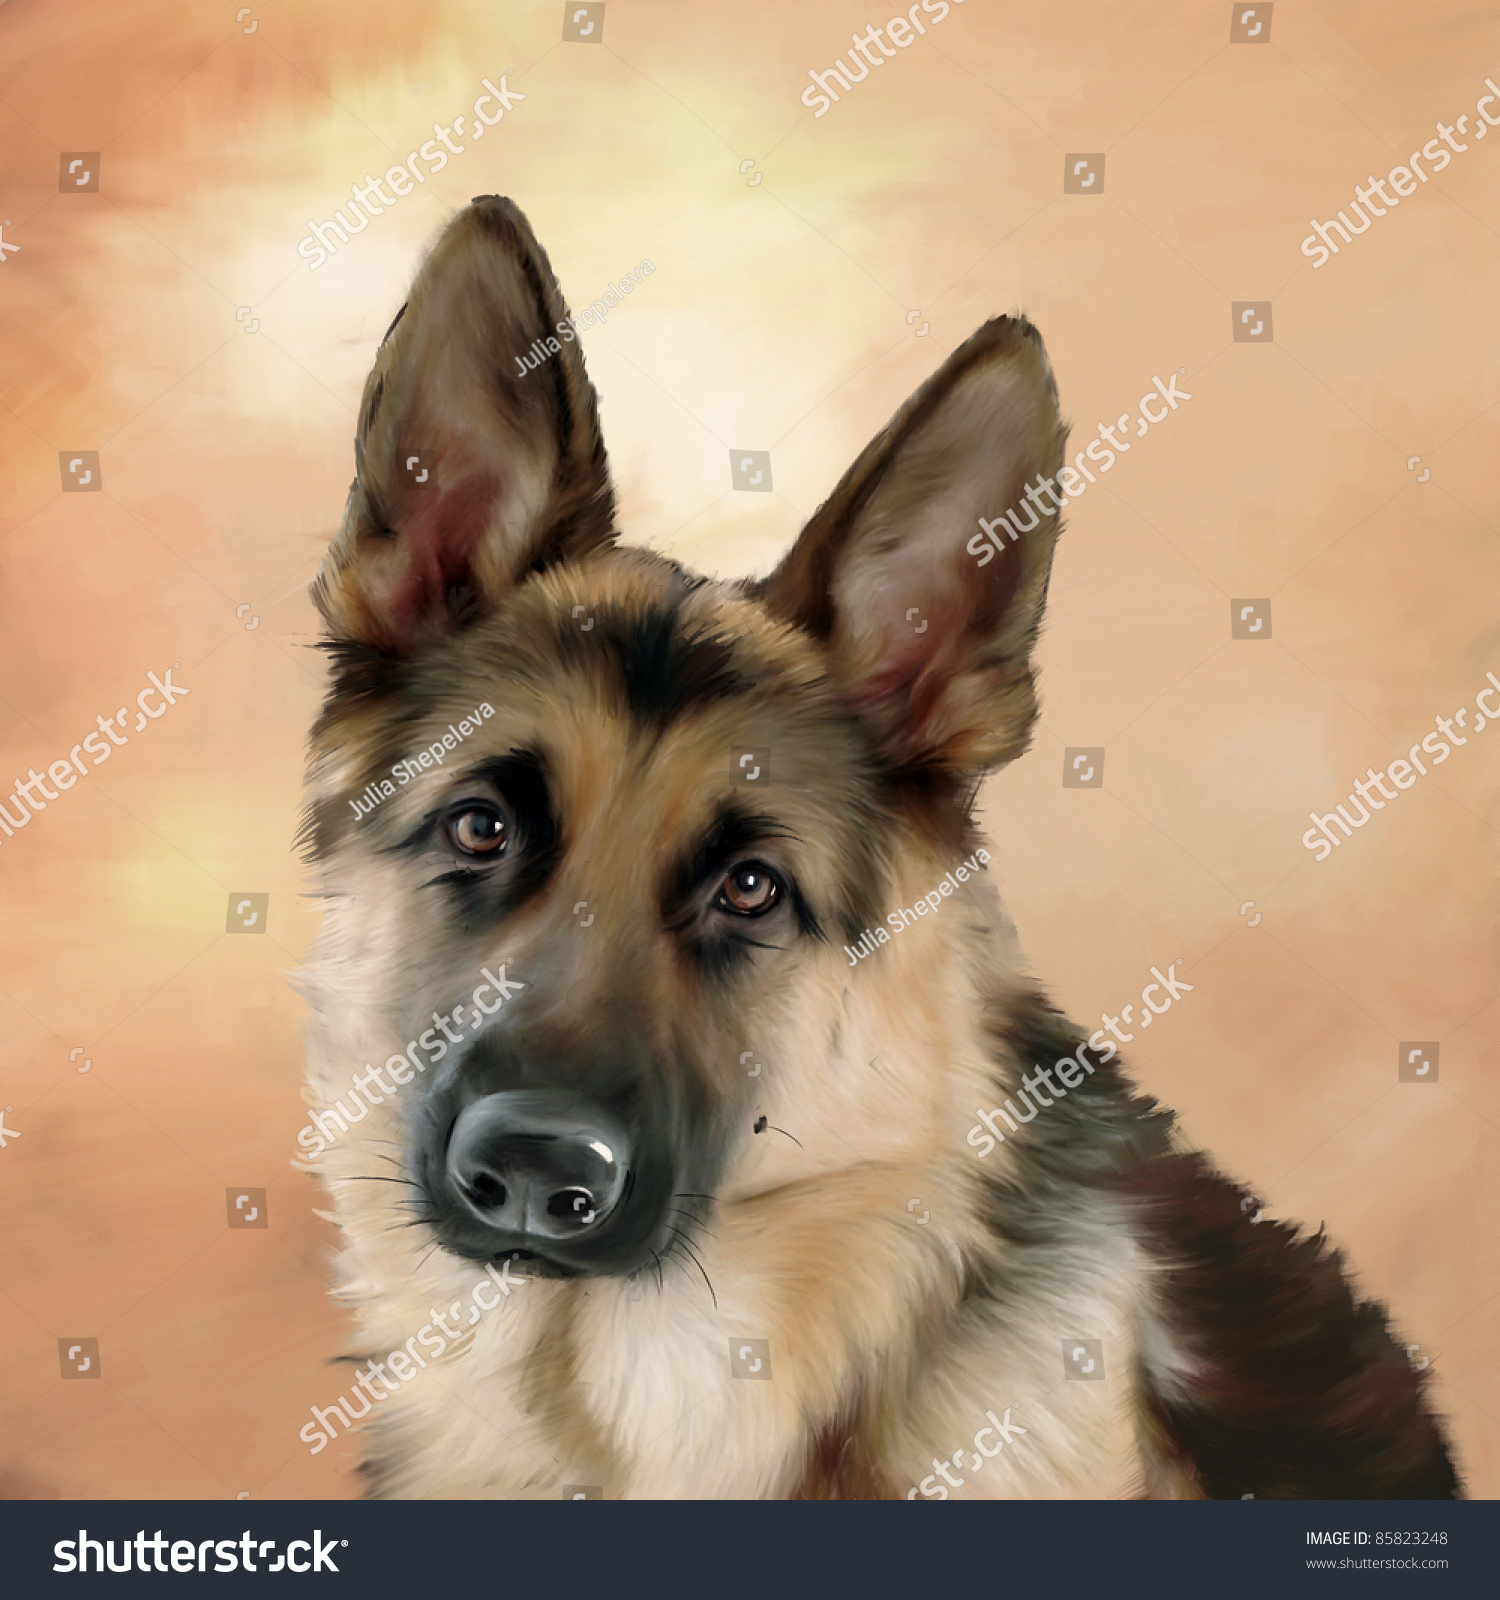 German shepherd portrait oil painting stock photo 85823248